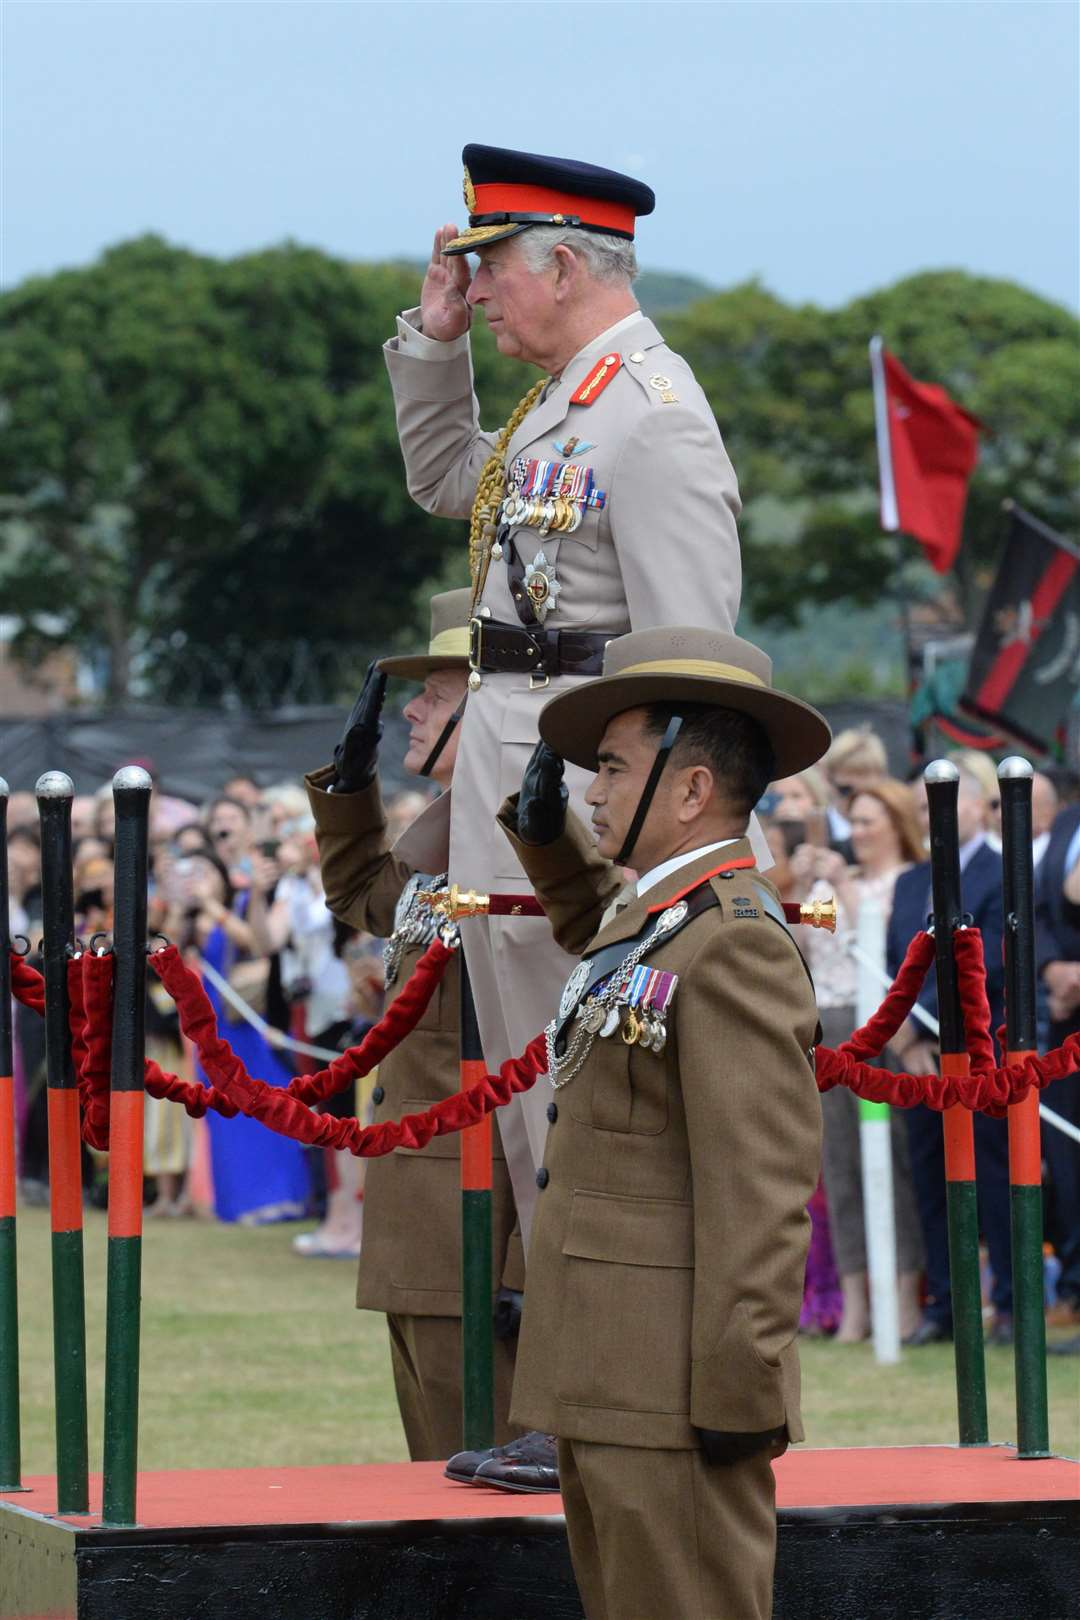 Prince Charles takes the Royal Salute during his visit to the barracks. Picture: Chris Davey